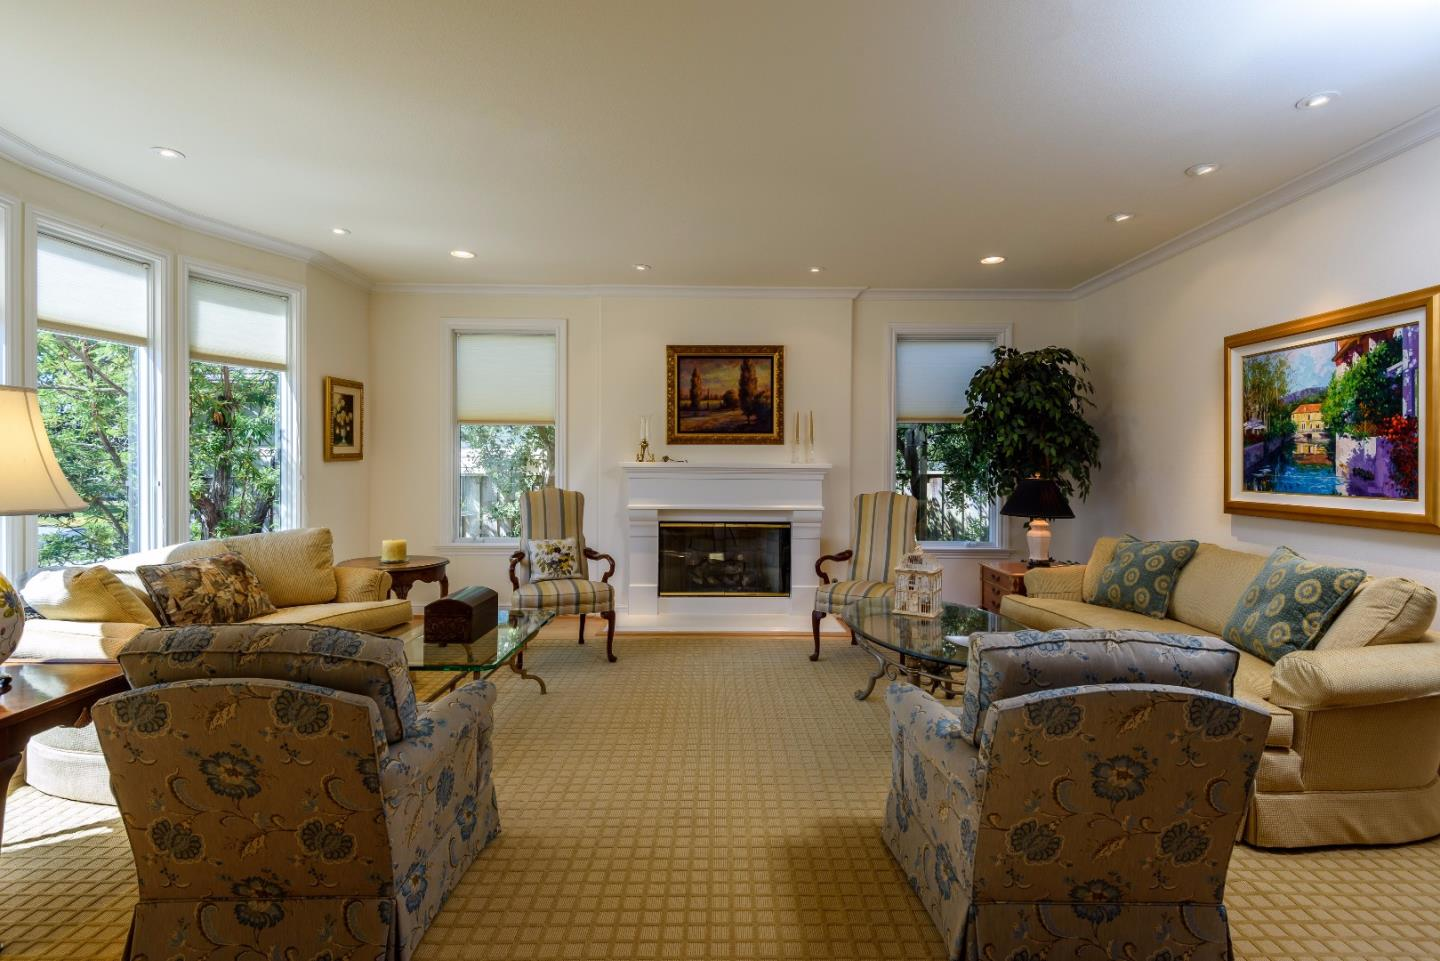 Additional photo for property listing at 116 Spyglass Ln  HALF MOON BAY, CALIFORNIA 94019